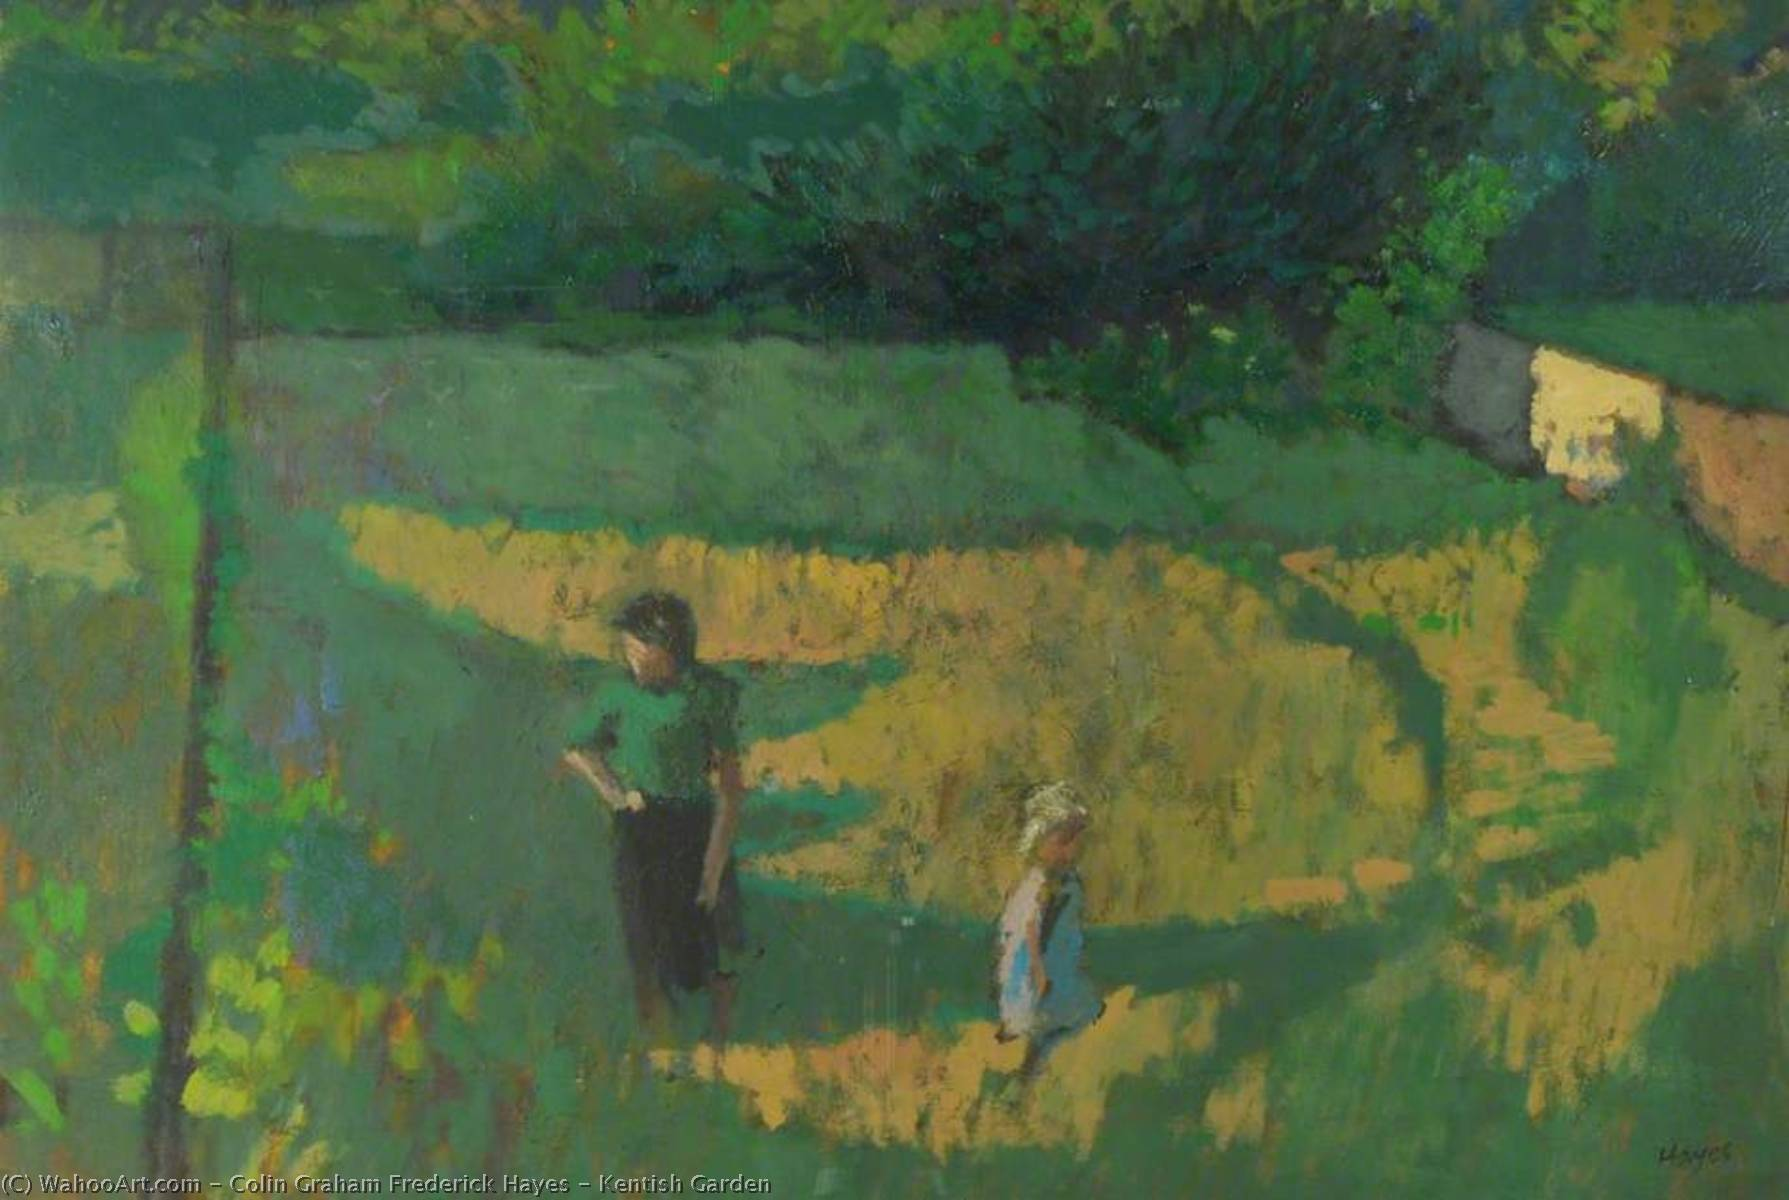 Kentish Garden, 1954 by Colin Graham Frederick Hayes | Oil Painting | WahooArt.com